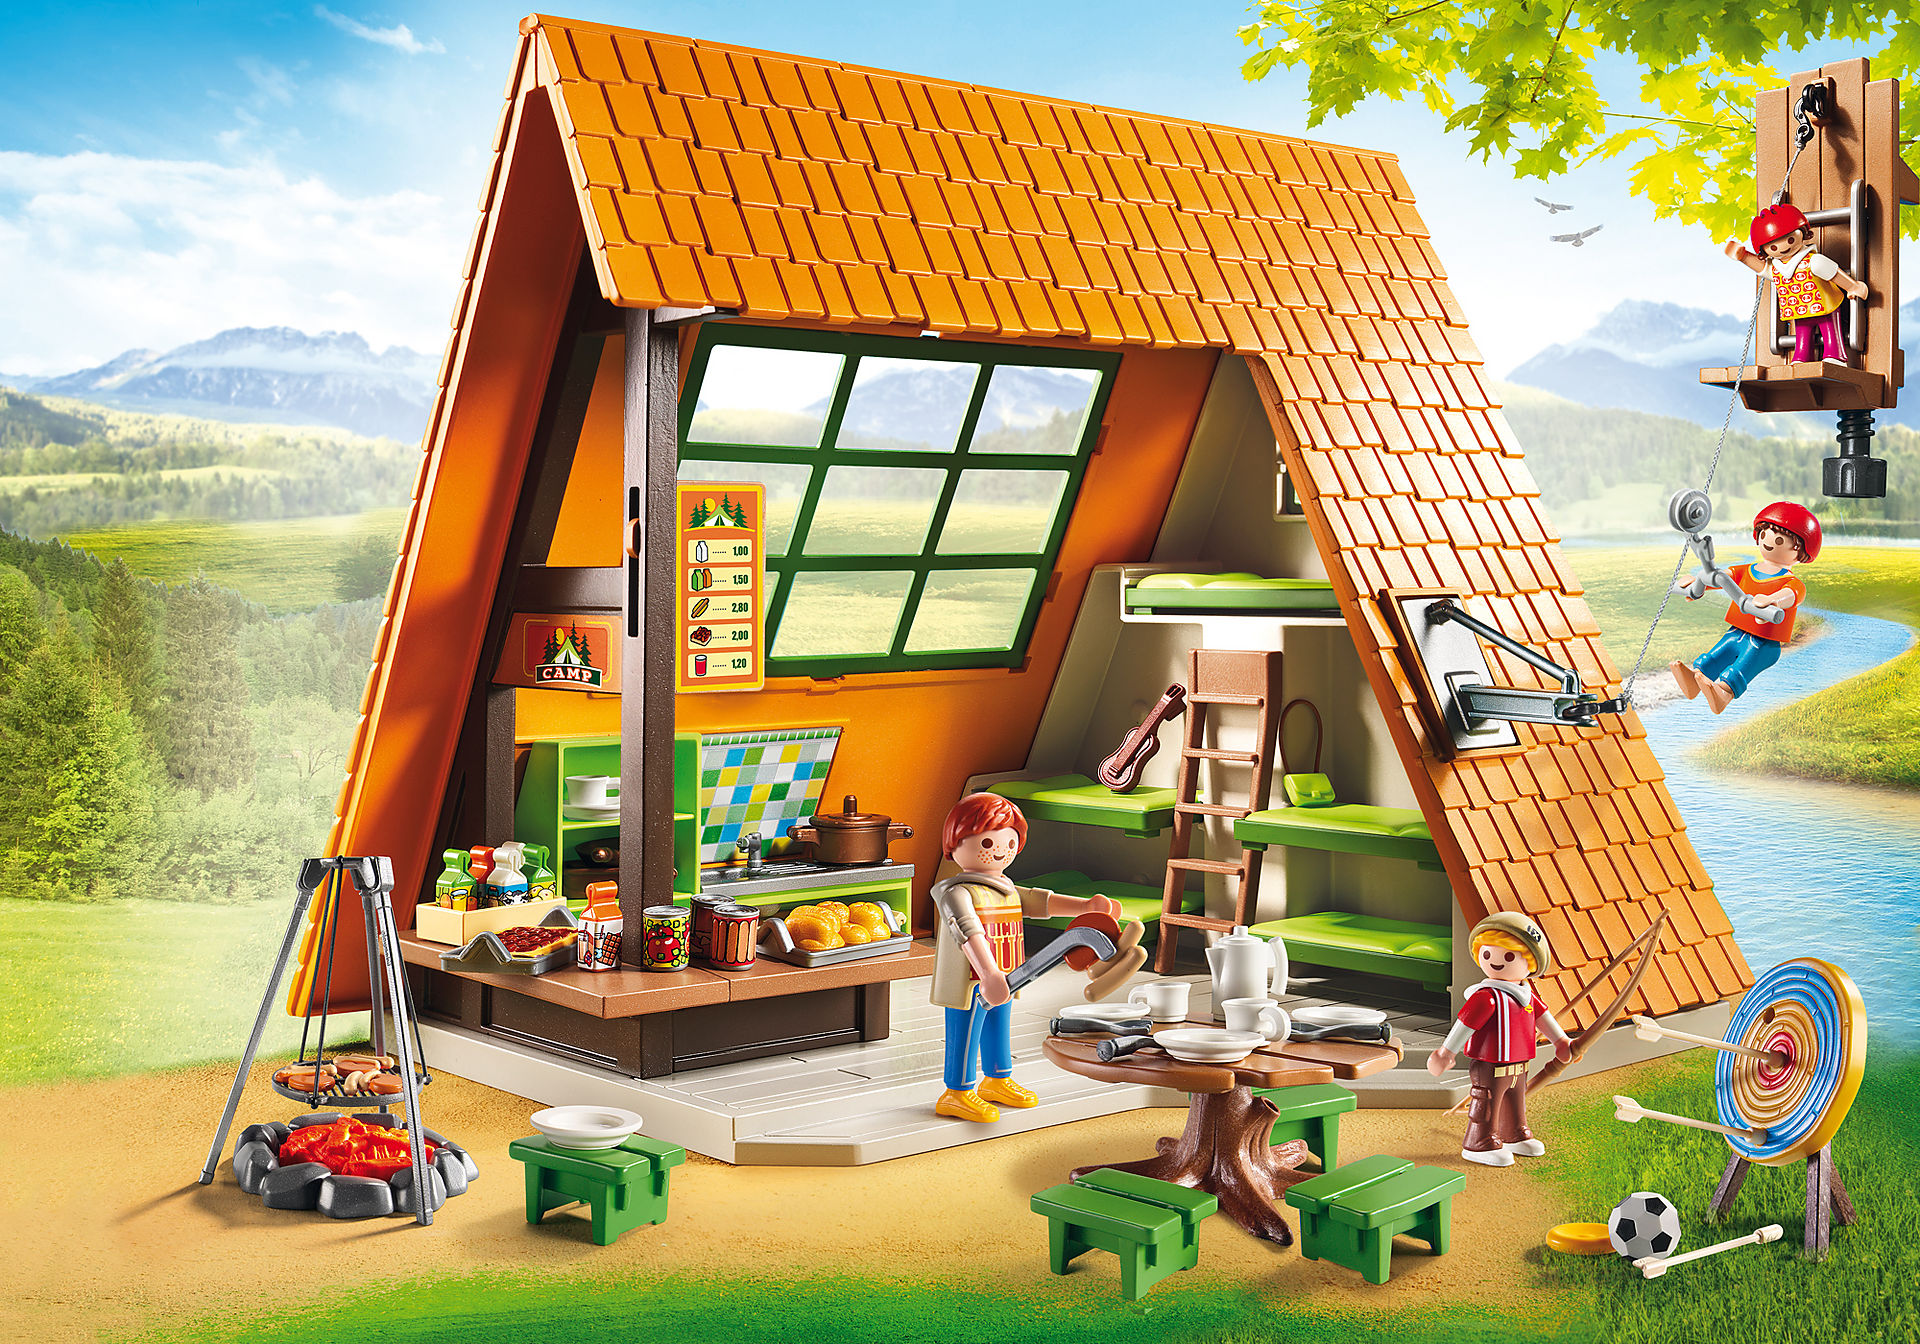 http://media.playmobil.com/i/playmobil/6887_product_detail/Großes Feriencamp